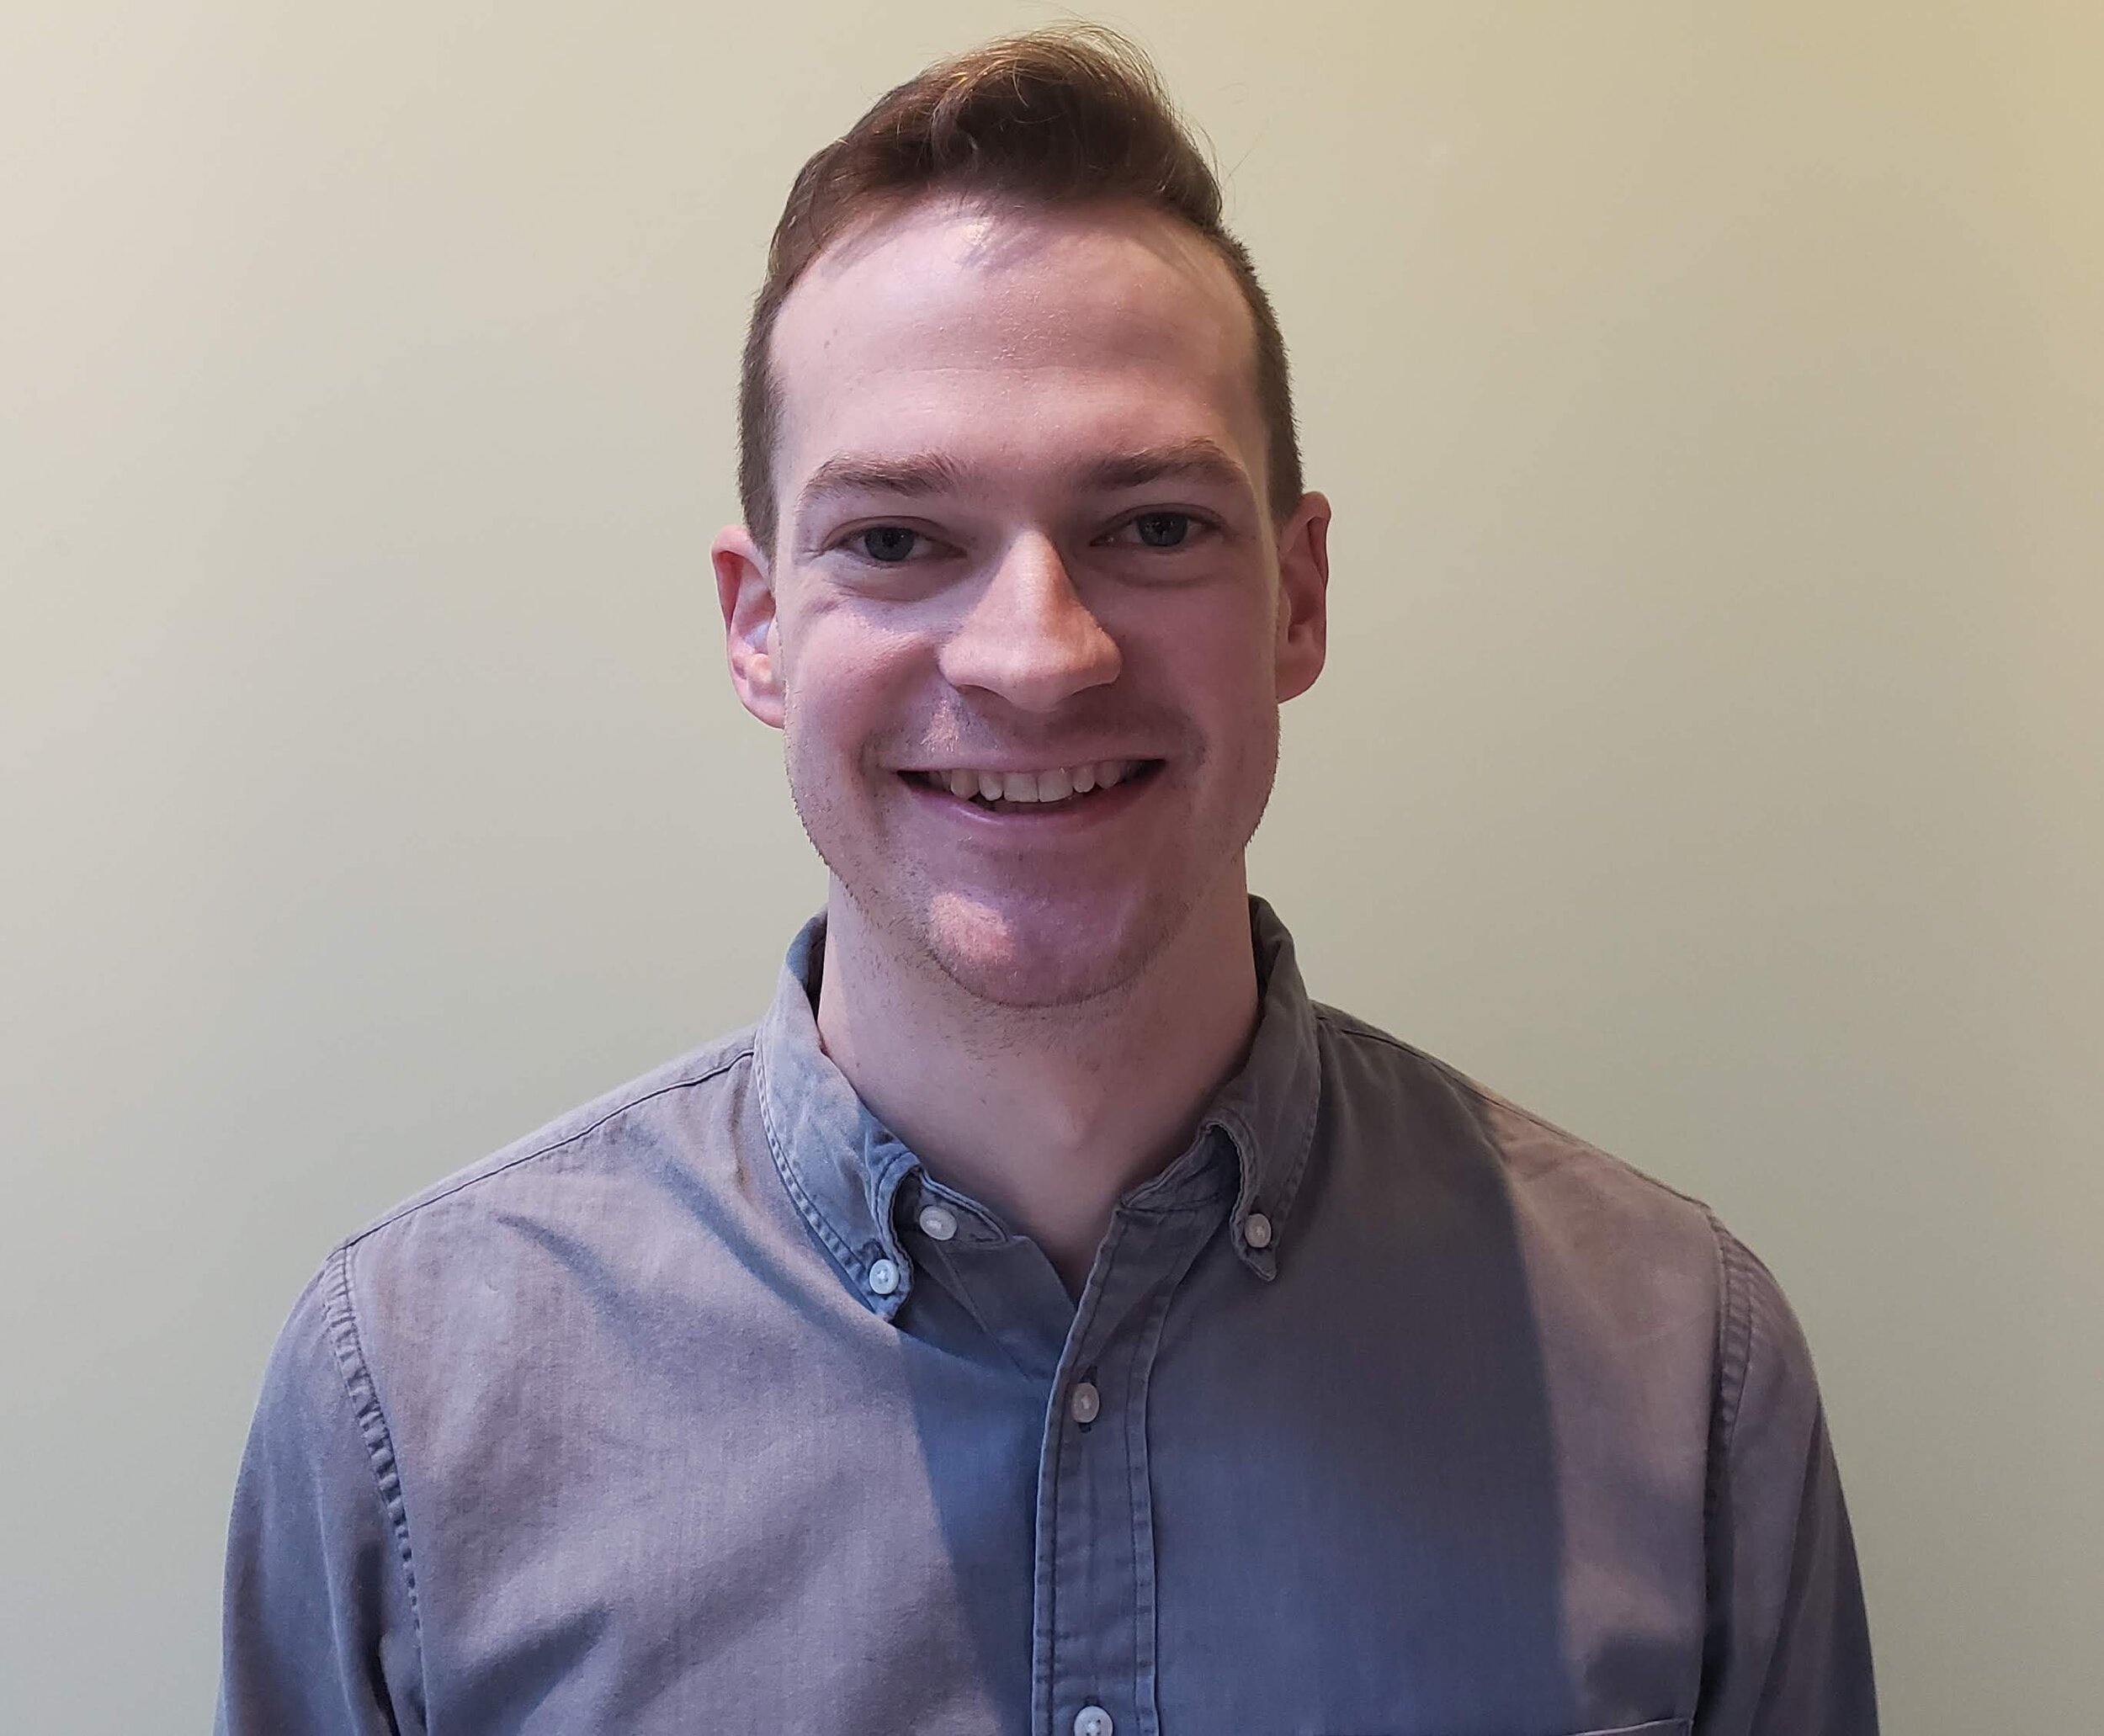 Joe WaggonerSenior Director - Joe manages TruMedia's software development team, and co-leads product management with Albert. Prior to joining TruMedia in 2015, Joe was a Software Developer/Analyst at The Johns Hopkins University Applied Physics Laboratory.